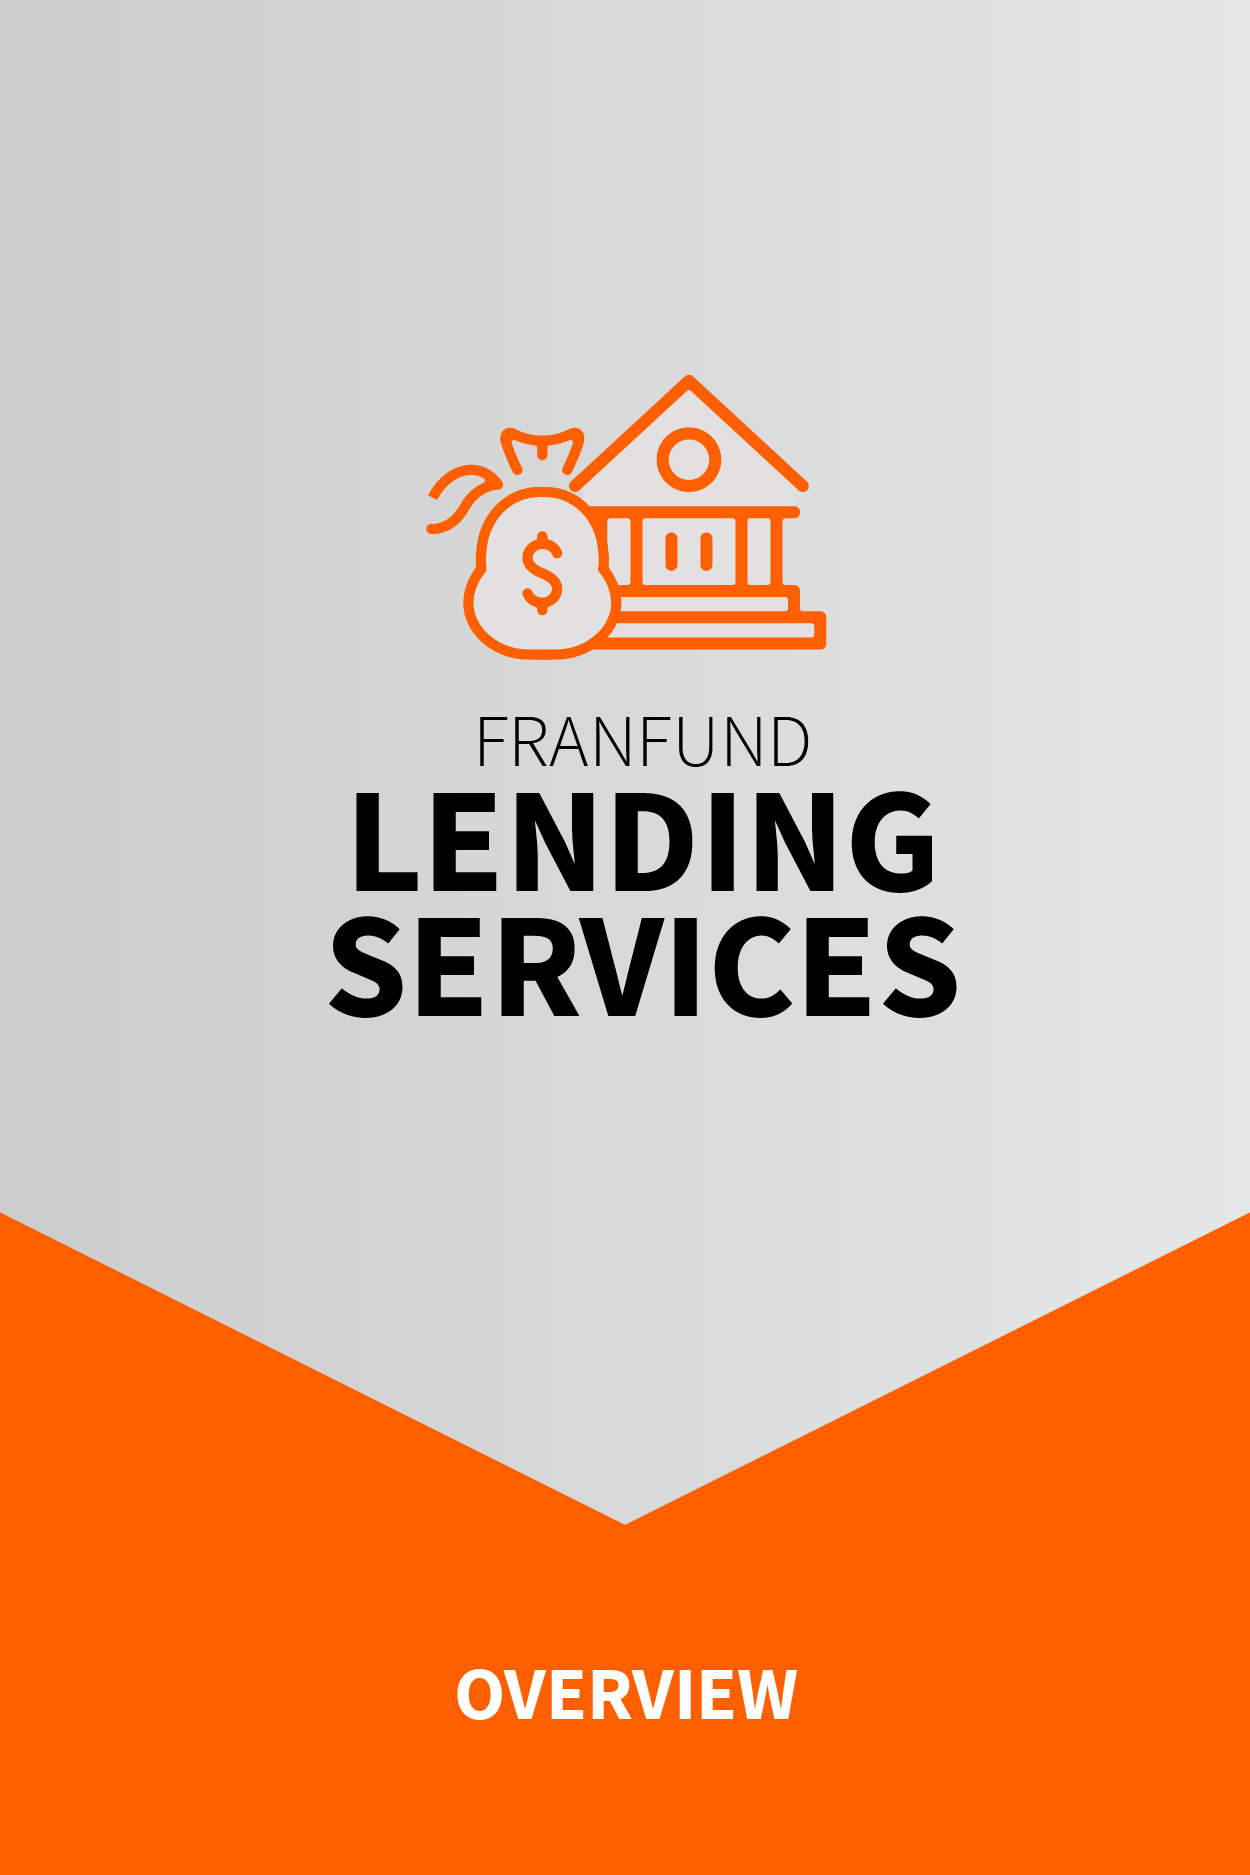 resource-download-preview-image-lending-services-overview-01